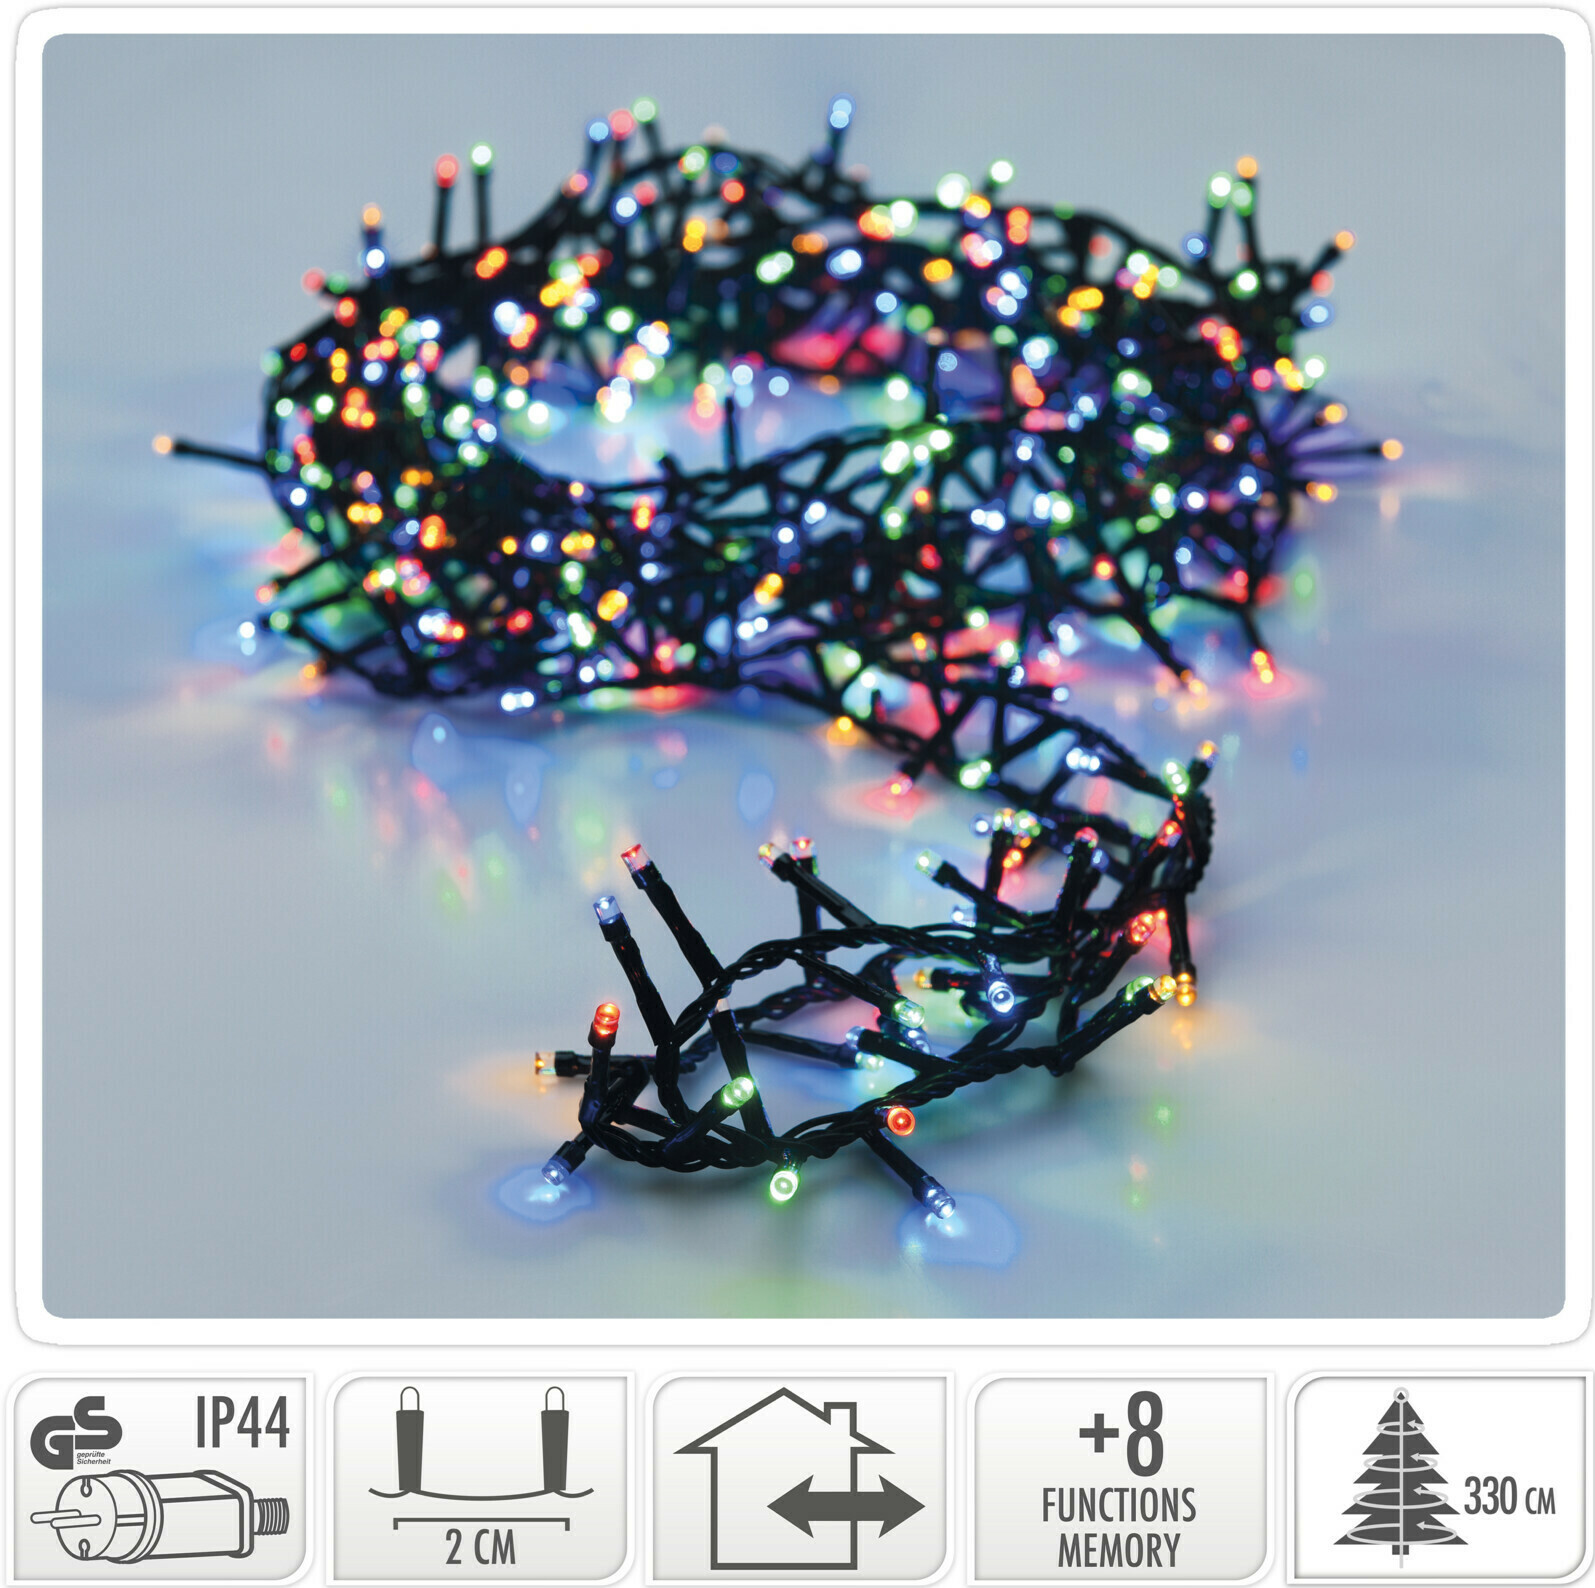 Valetti Microcluster 1800LED Multi kerstboomverlichting